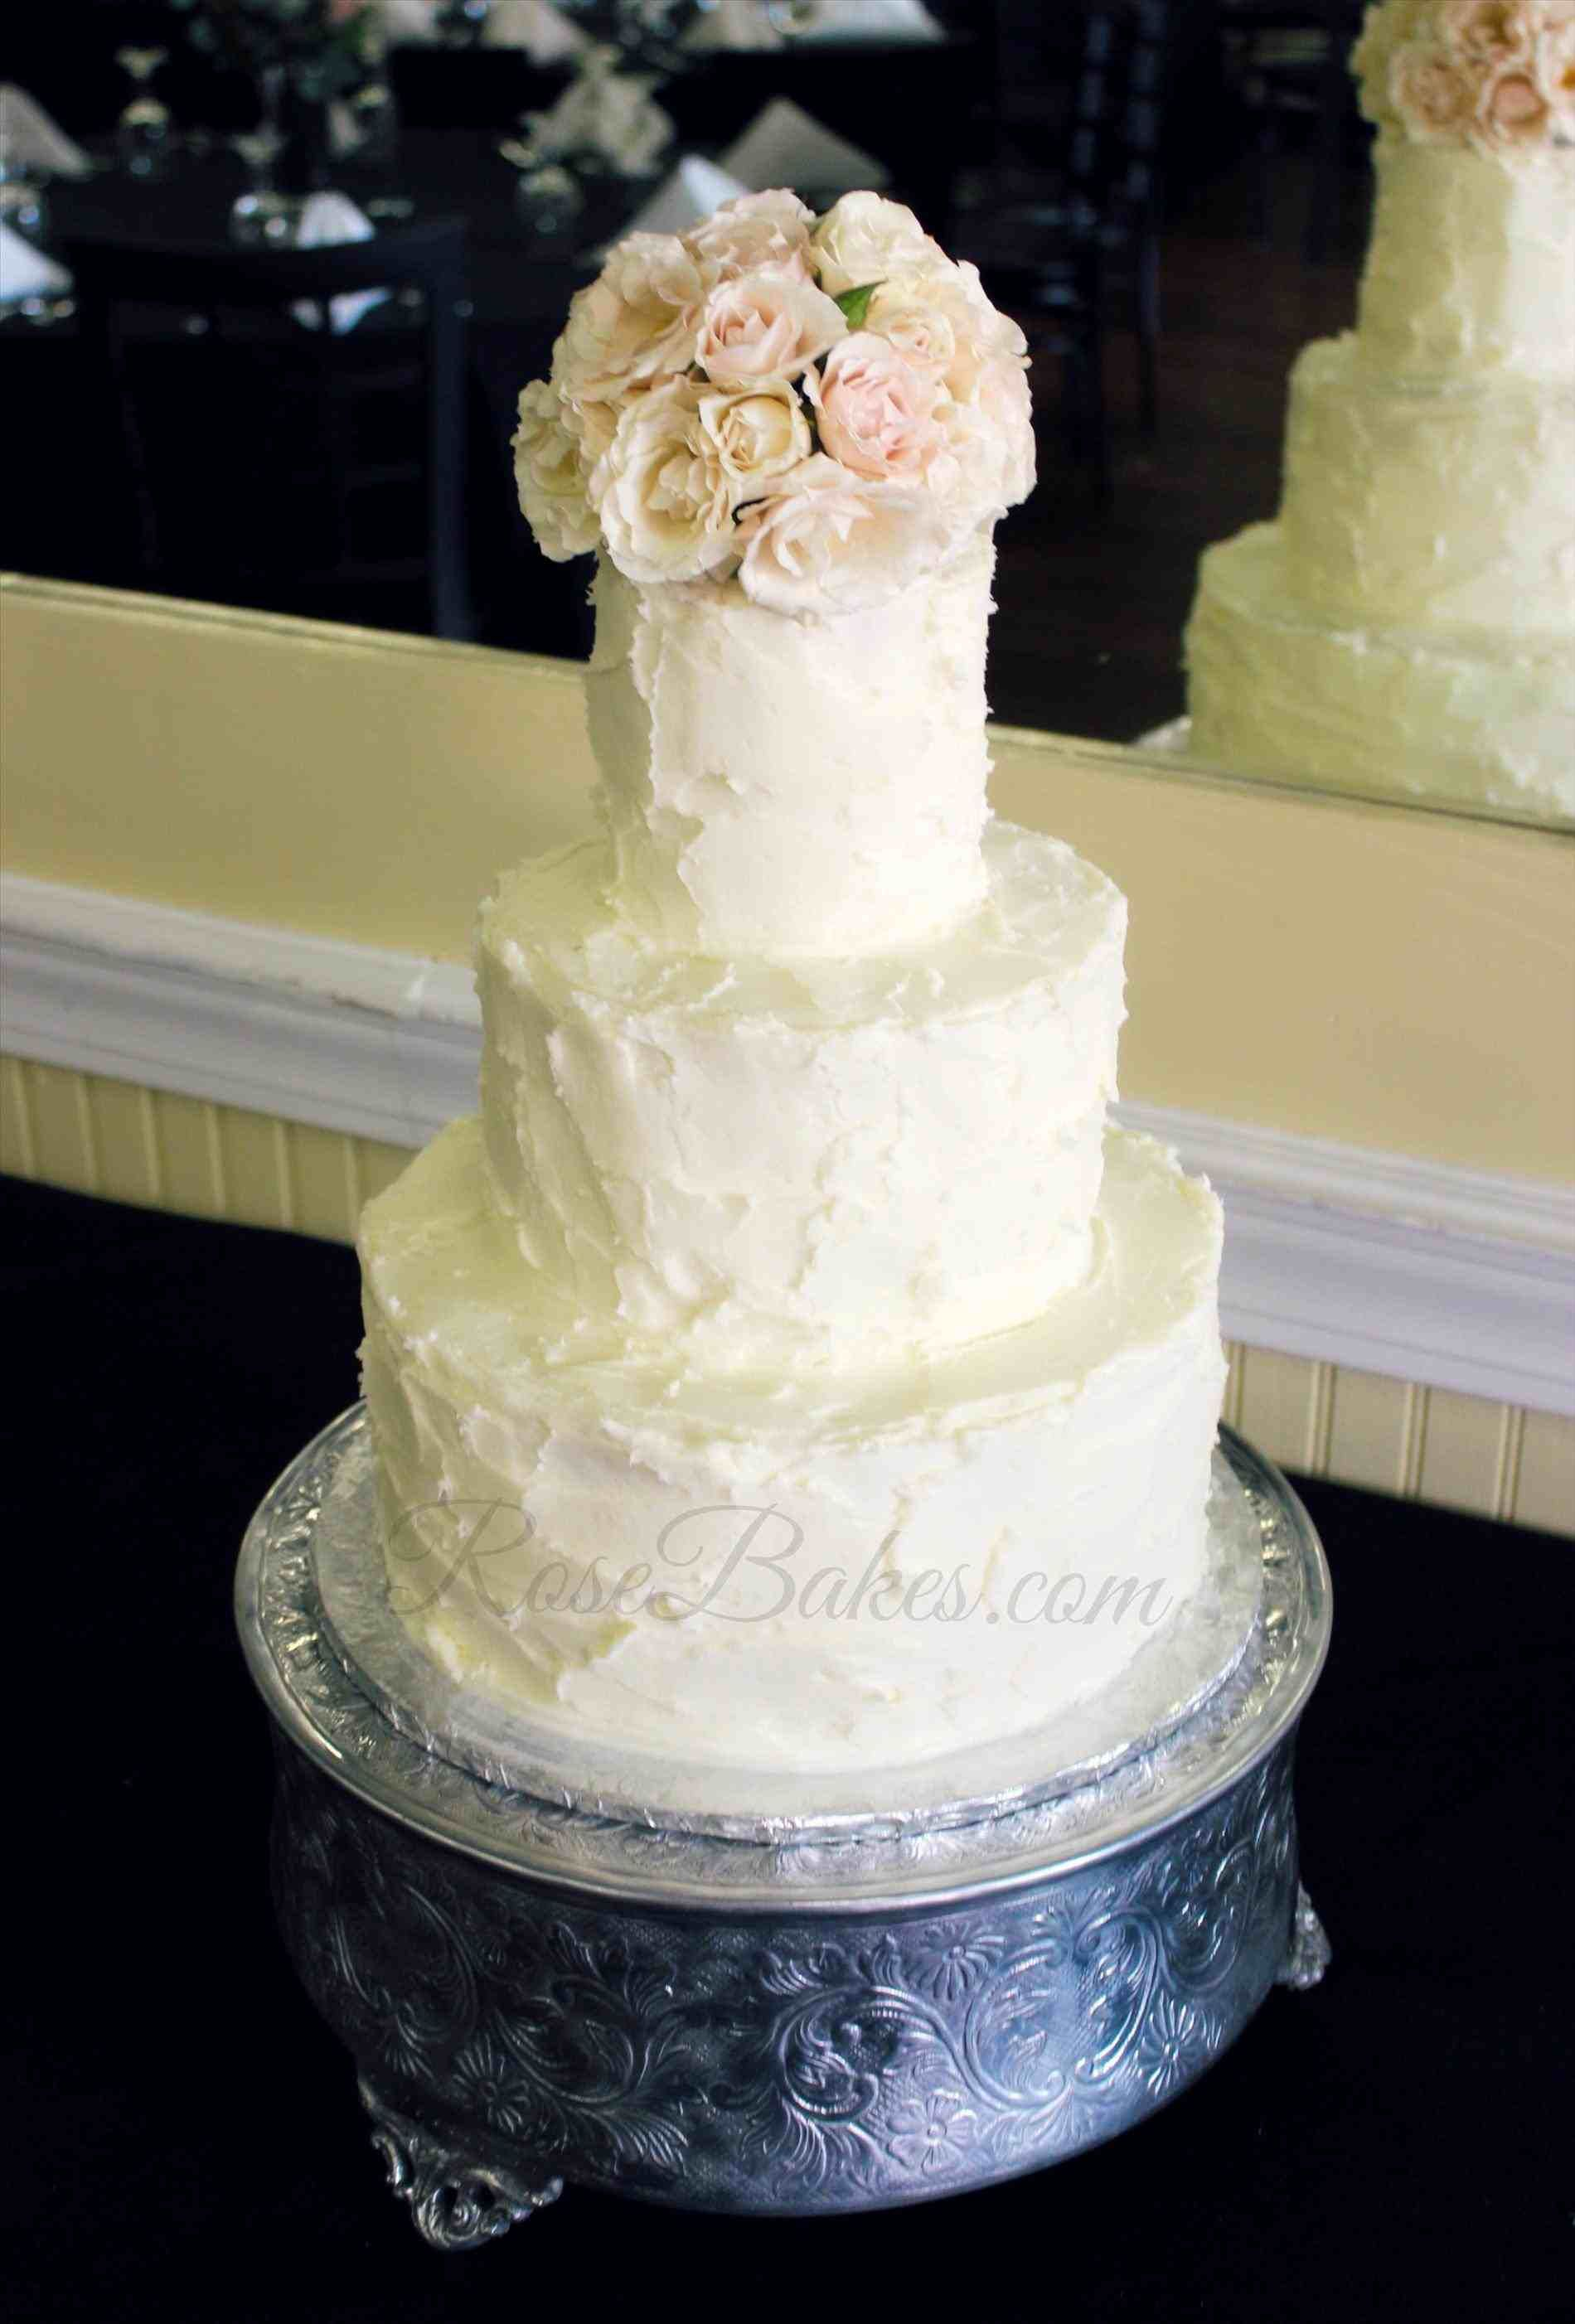 Simple country wedding cake ideas weddings pinterest country